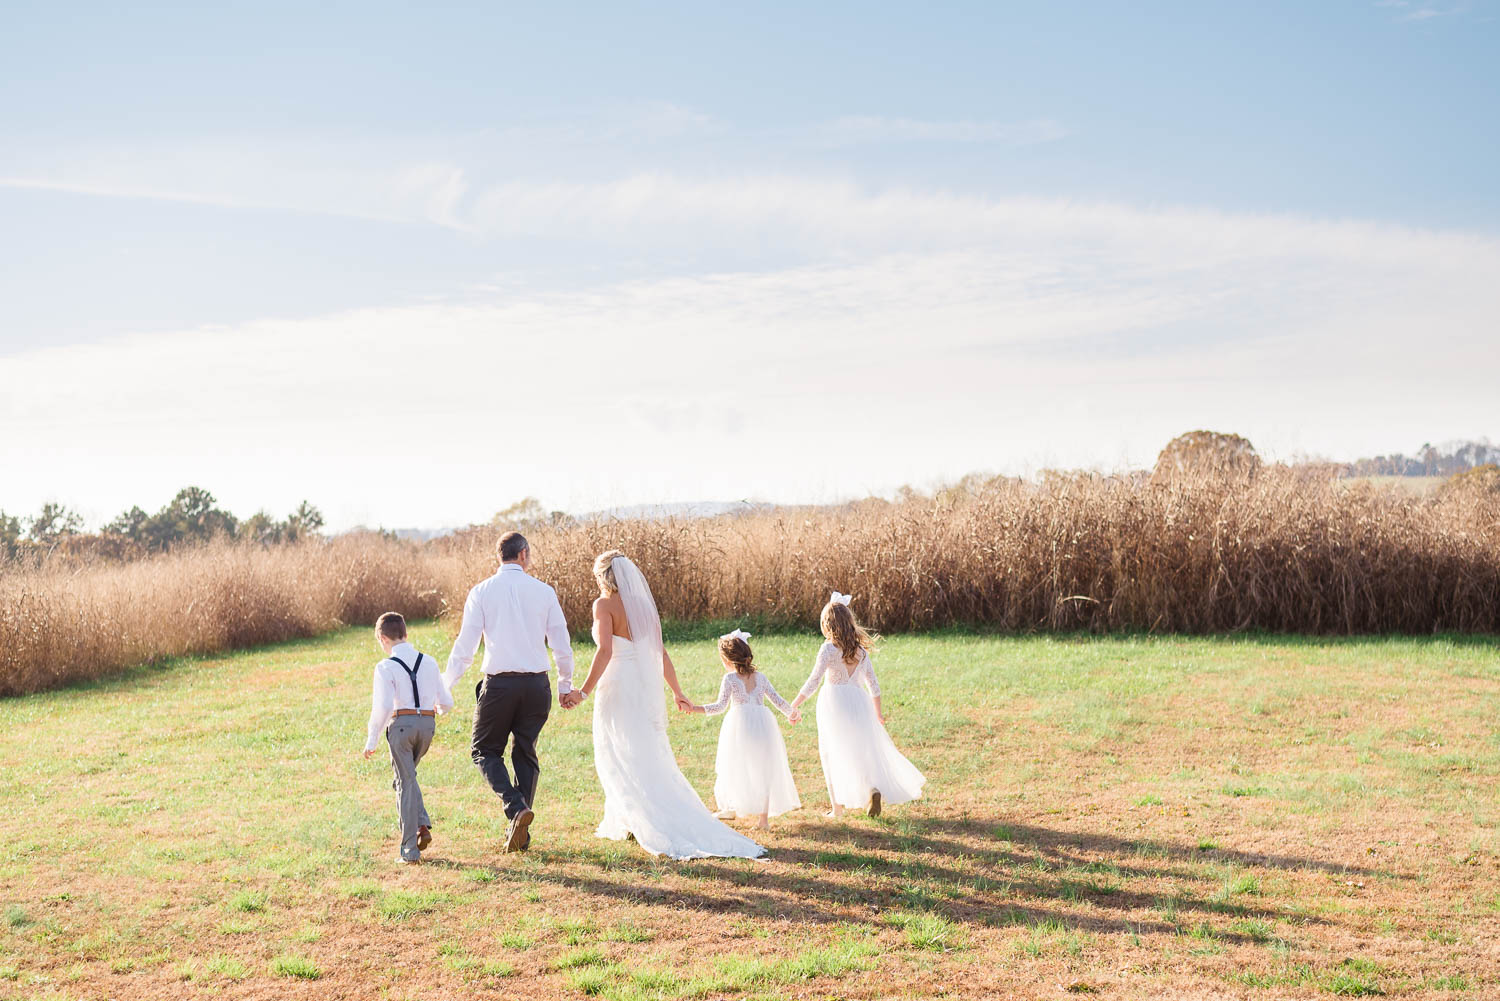 family walking off into the sessing sun in wedding attire at the Barn at Drewia Hill in East Tennessee